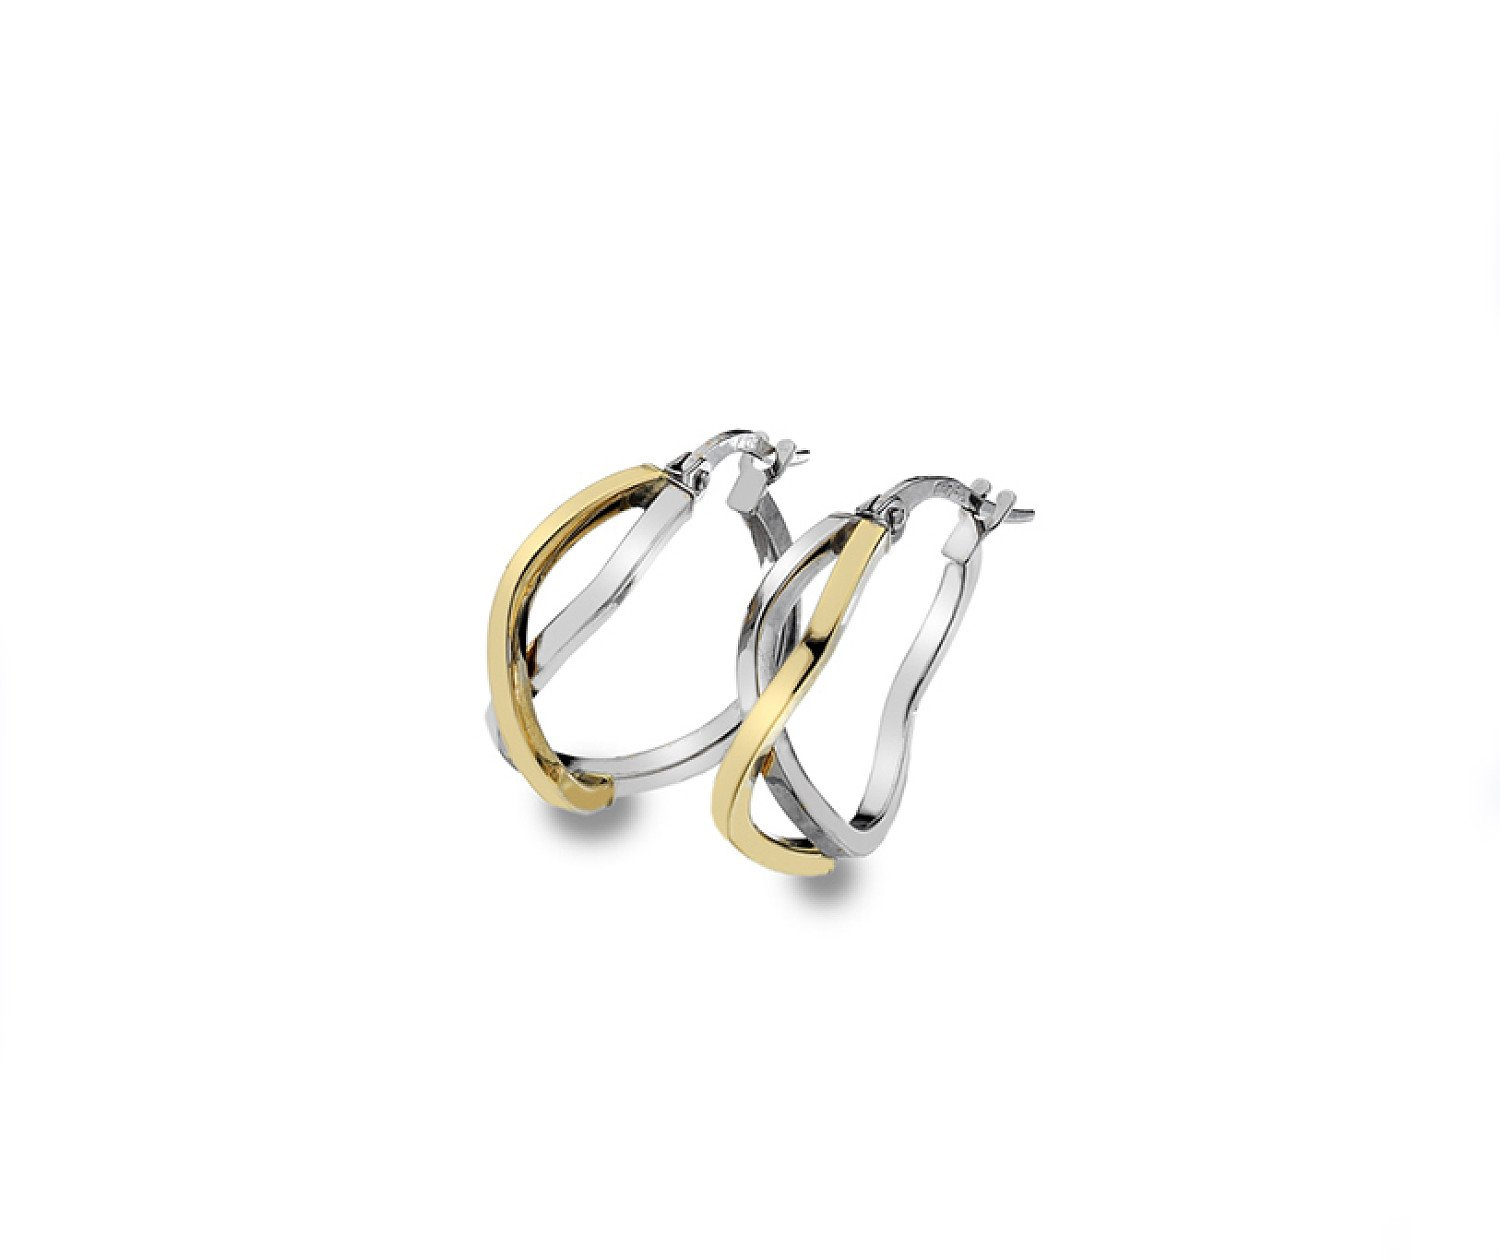 9ct yellow & white gold 15mm crossover hoop earrings from Callibeau Jewellery